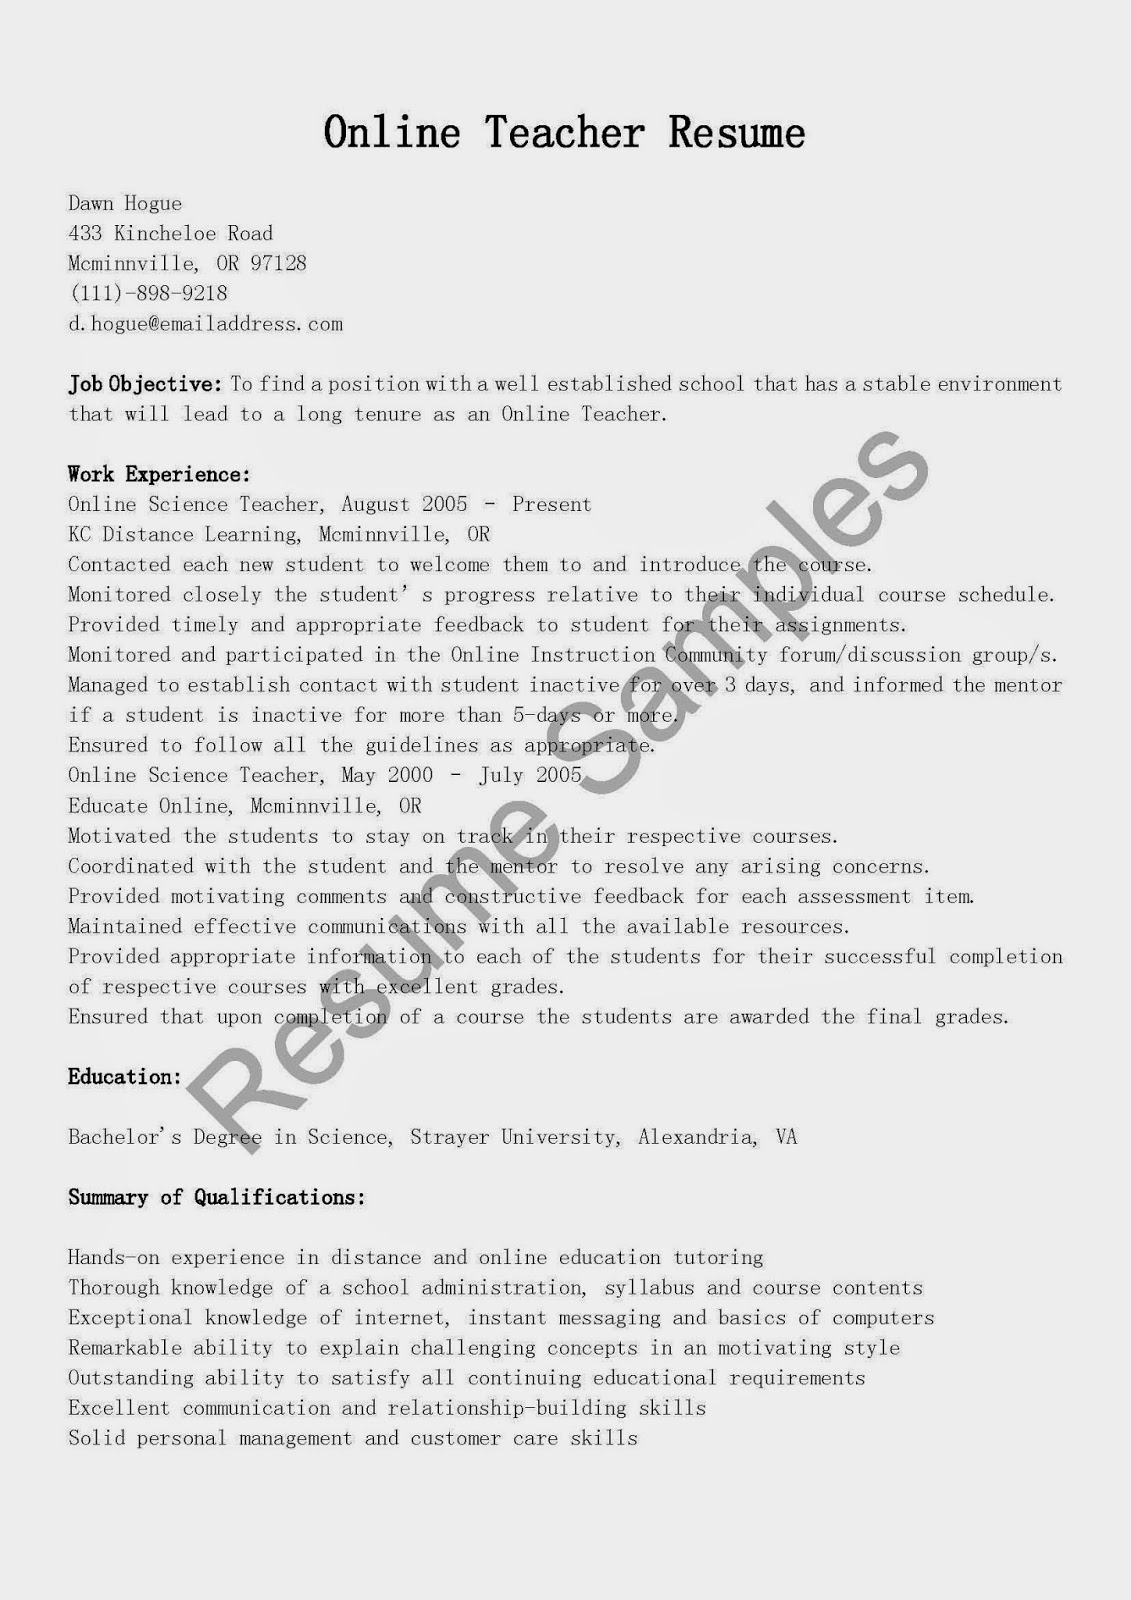 Internet Skills On Resumes